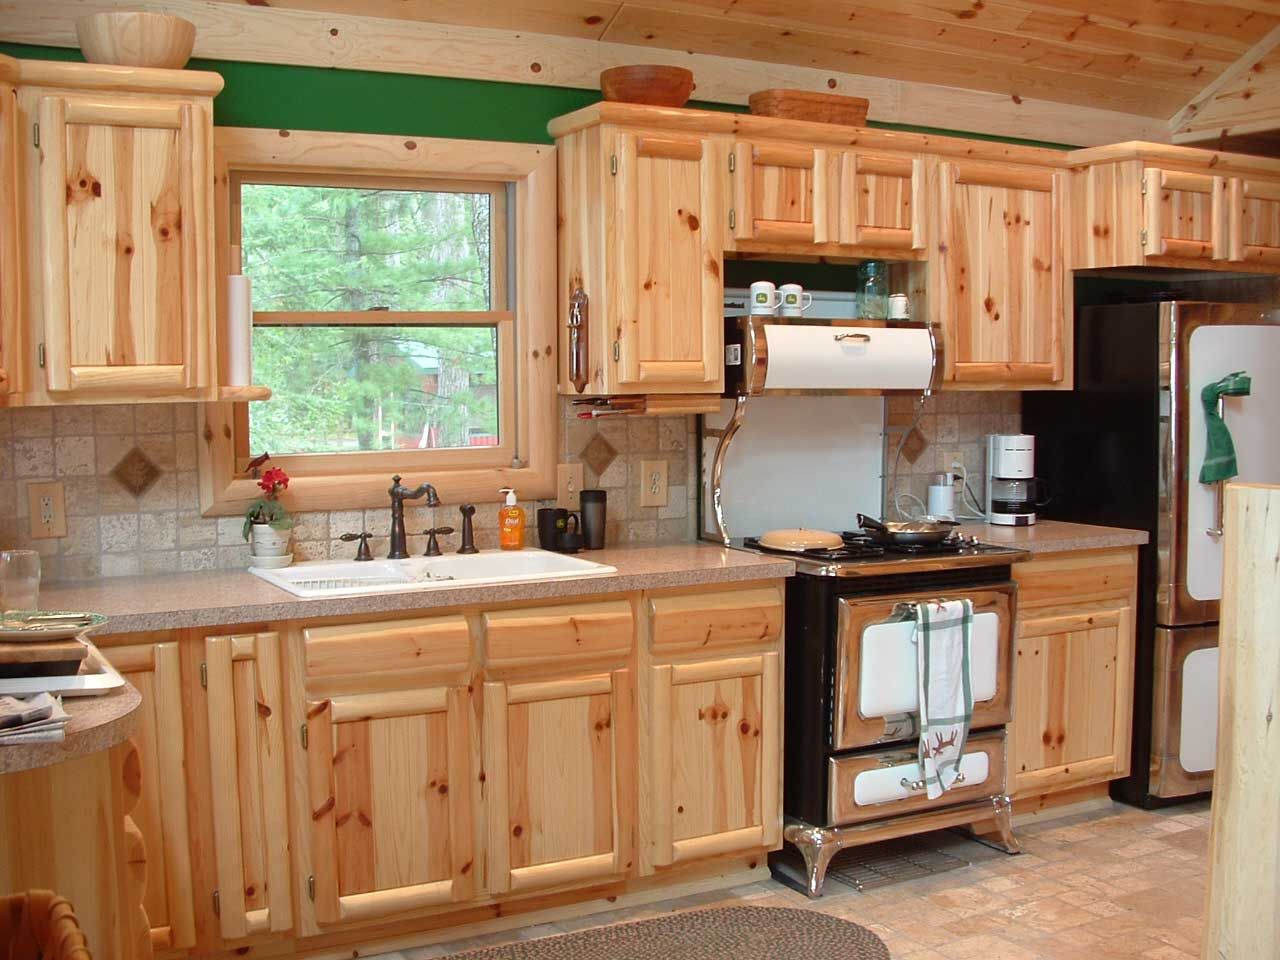 Best Kitchen Gallery: Cabi Ry Kitchens And Baths Timber Country Cabi Ry of Rustic Pine Kitchen Cabinets on cal-ite.com